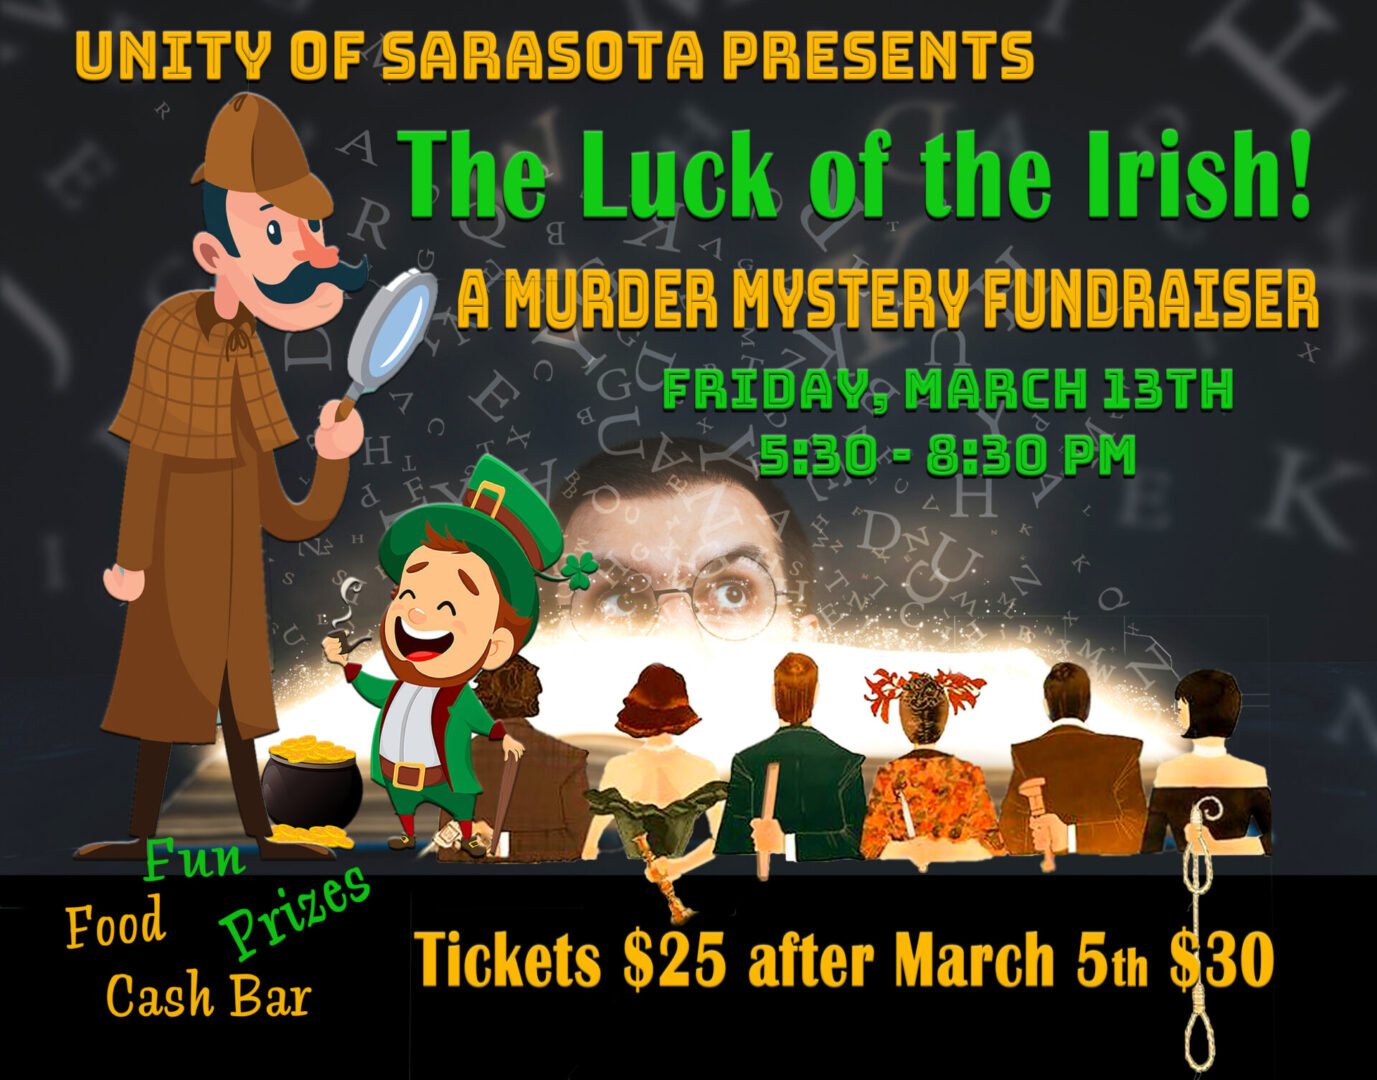 The Luck of the Irish Murder Mystery Fundraiser at Unity of Sarasota